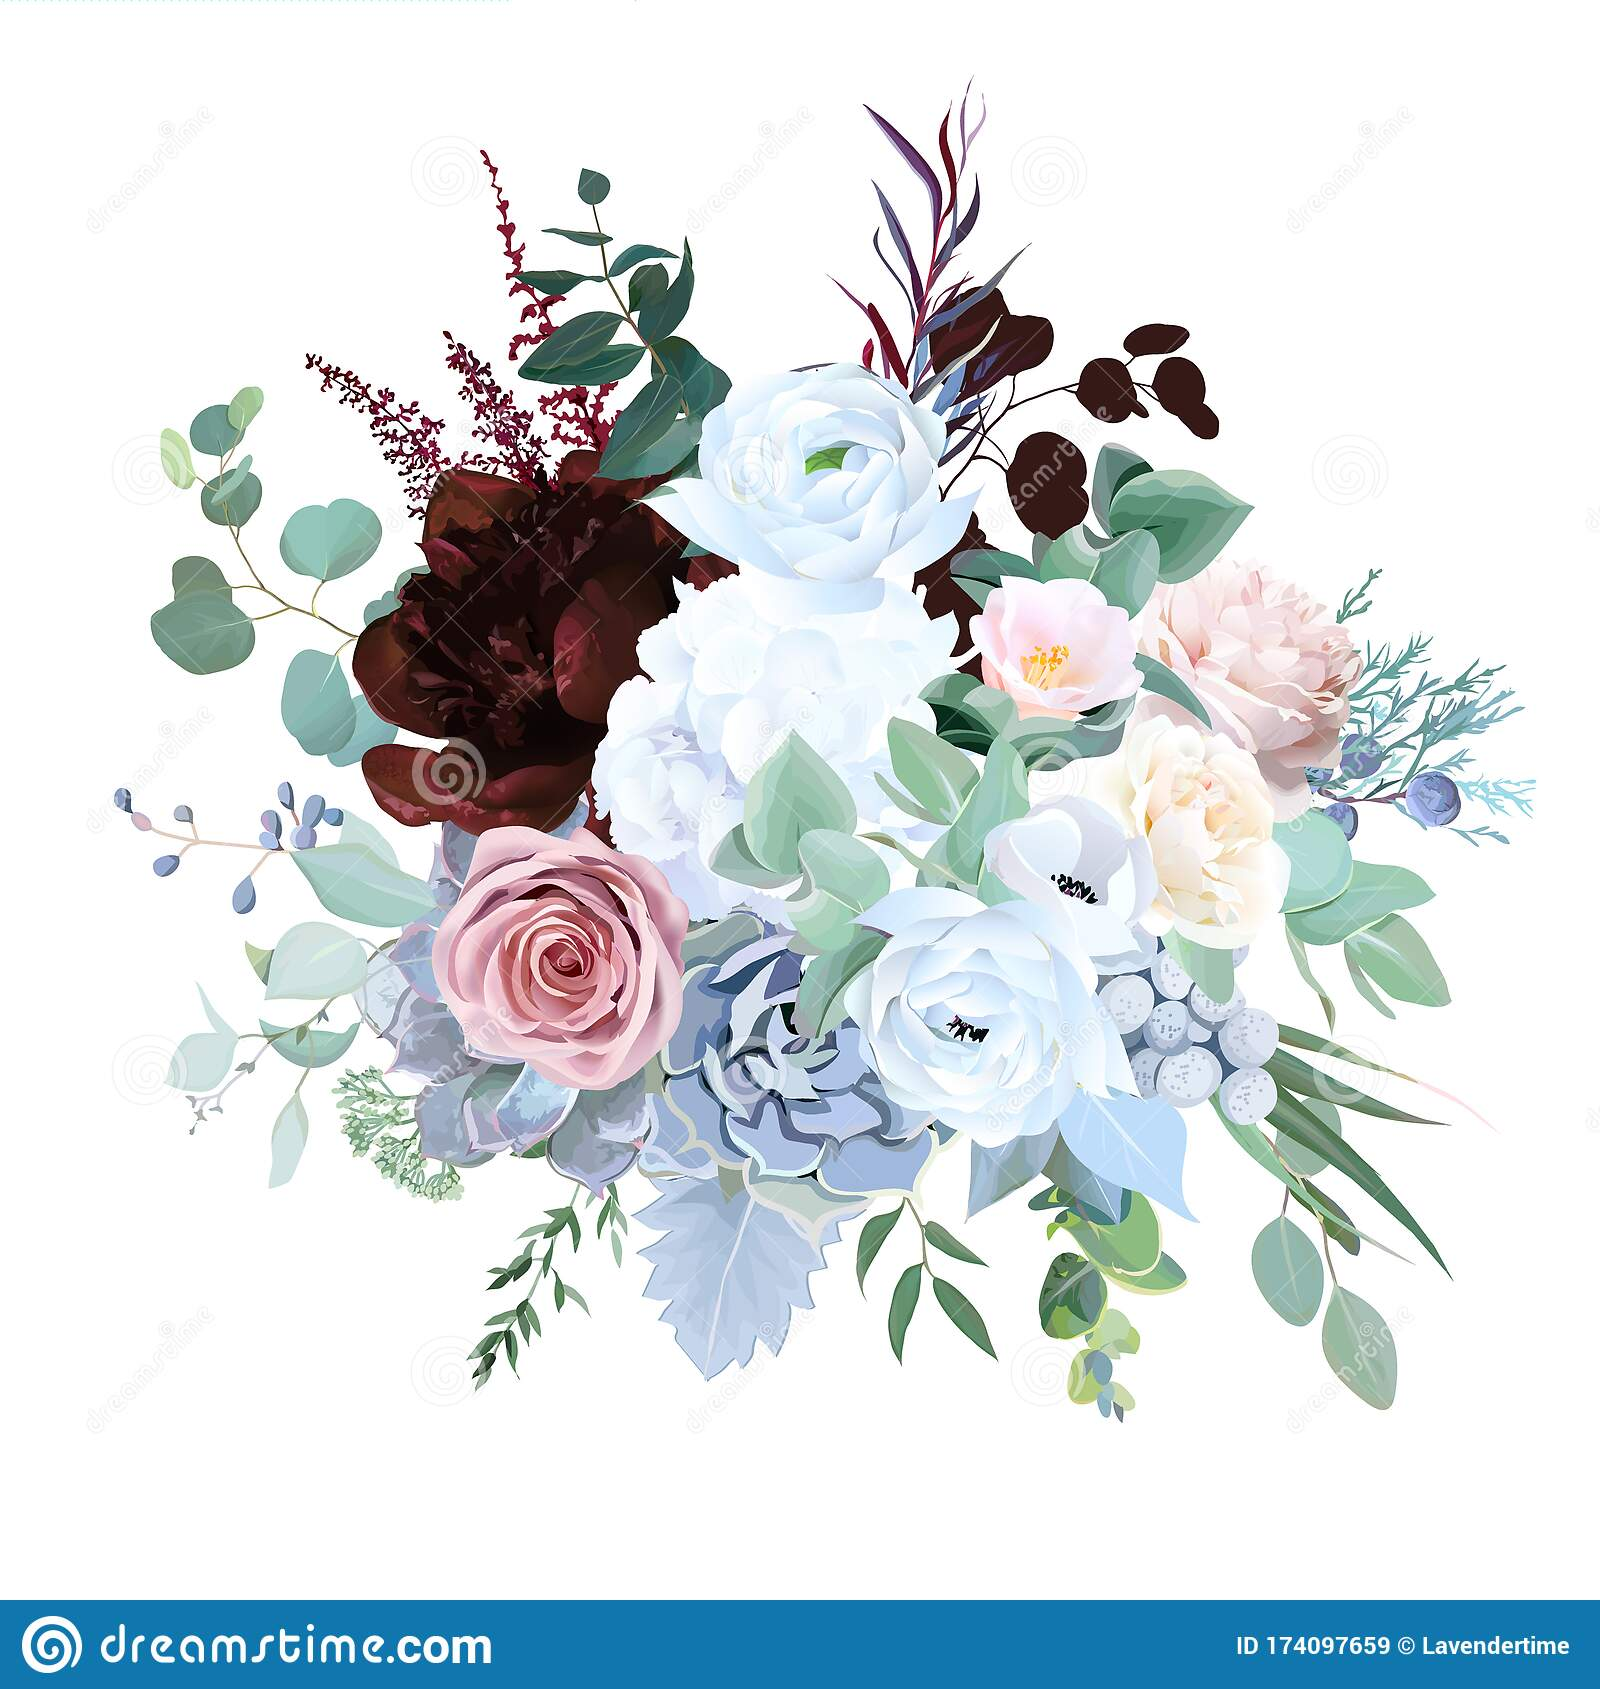 Elegant Floral Vector Bouquet With Burgundy Red Peony Stock Vector Illustration Of Blossom Dusty 174097659